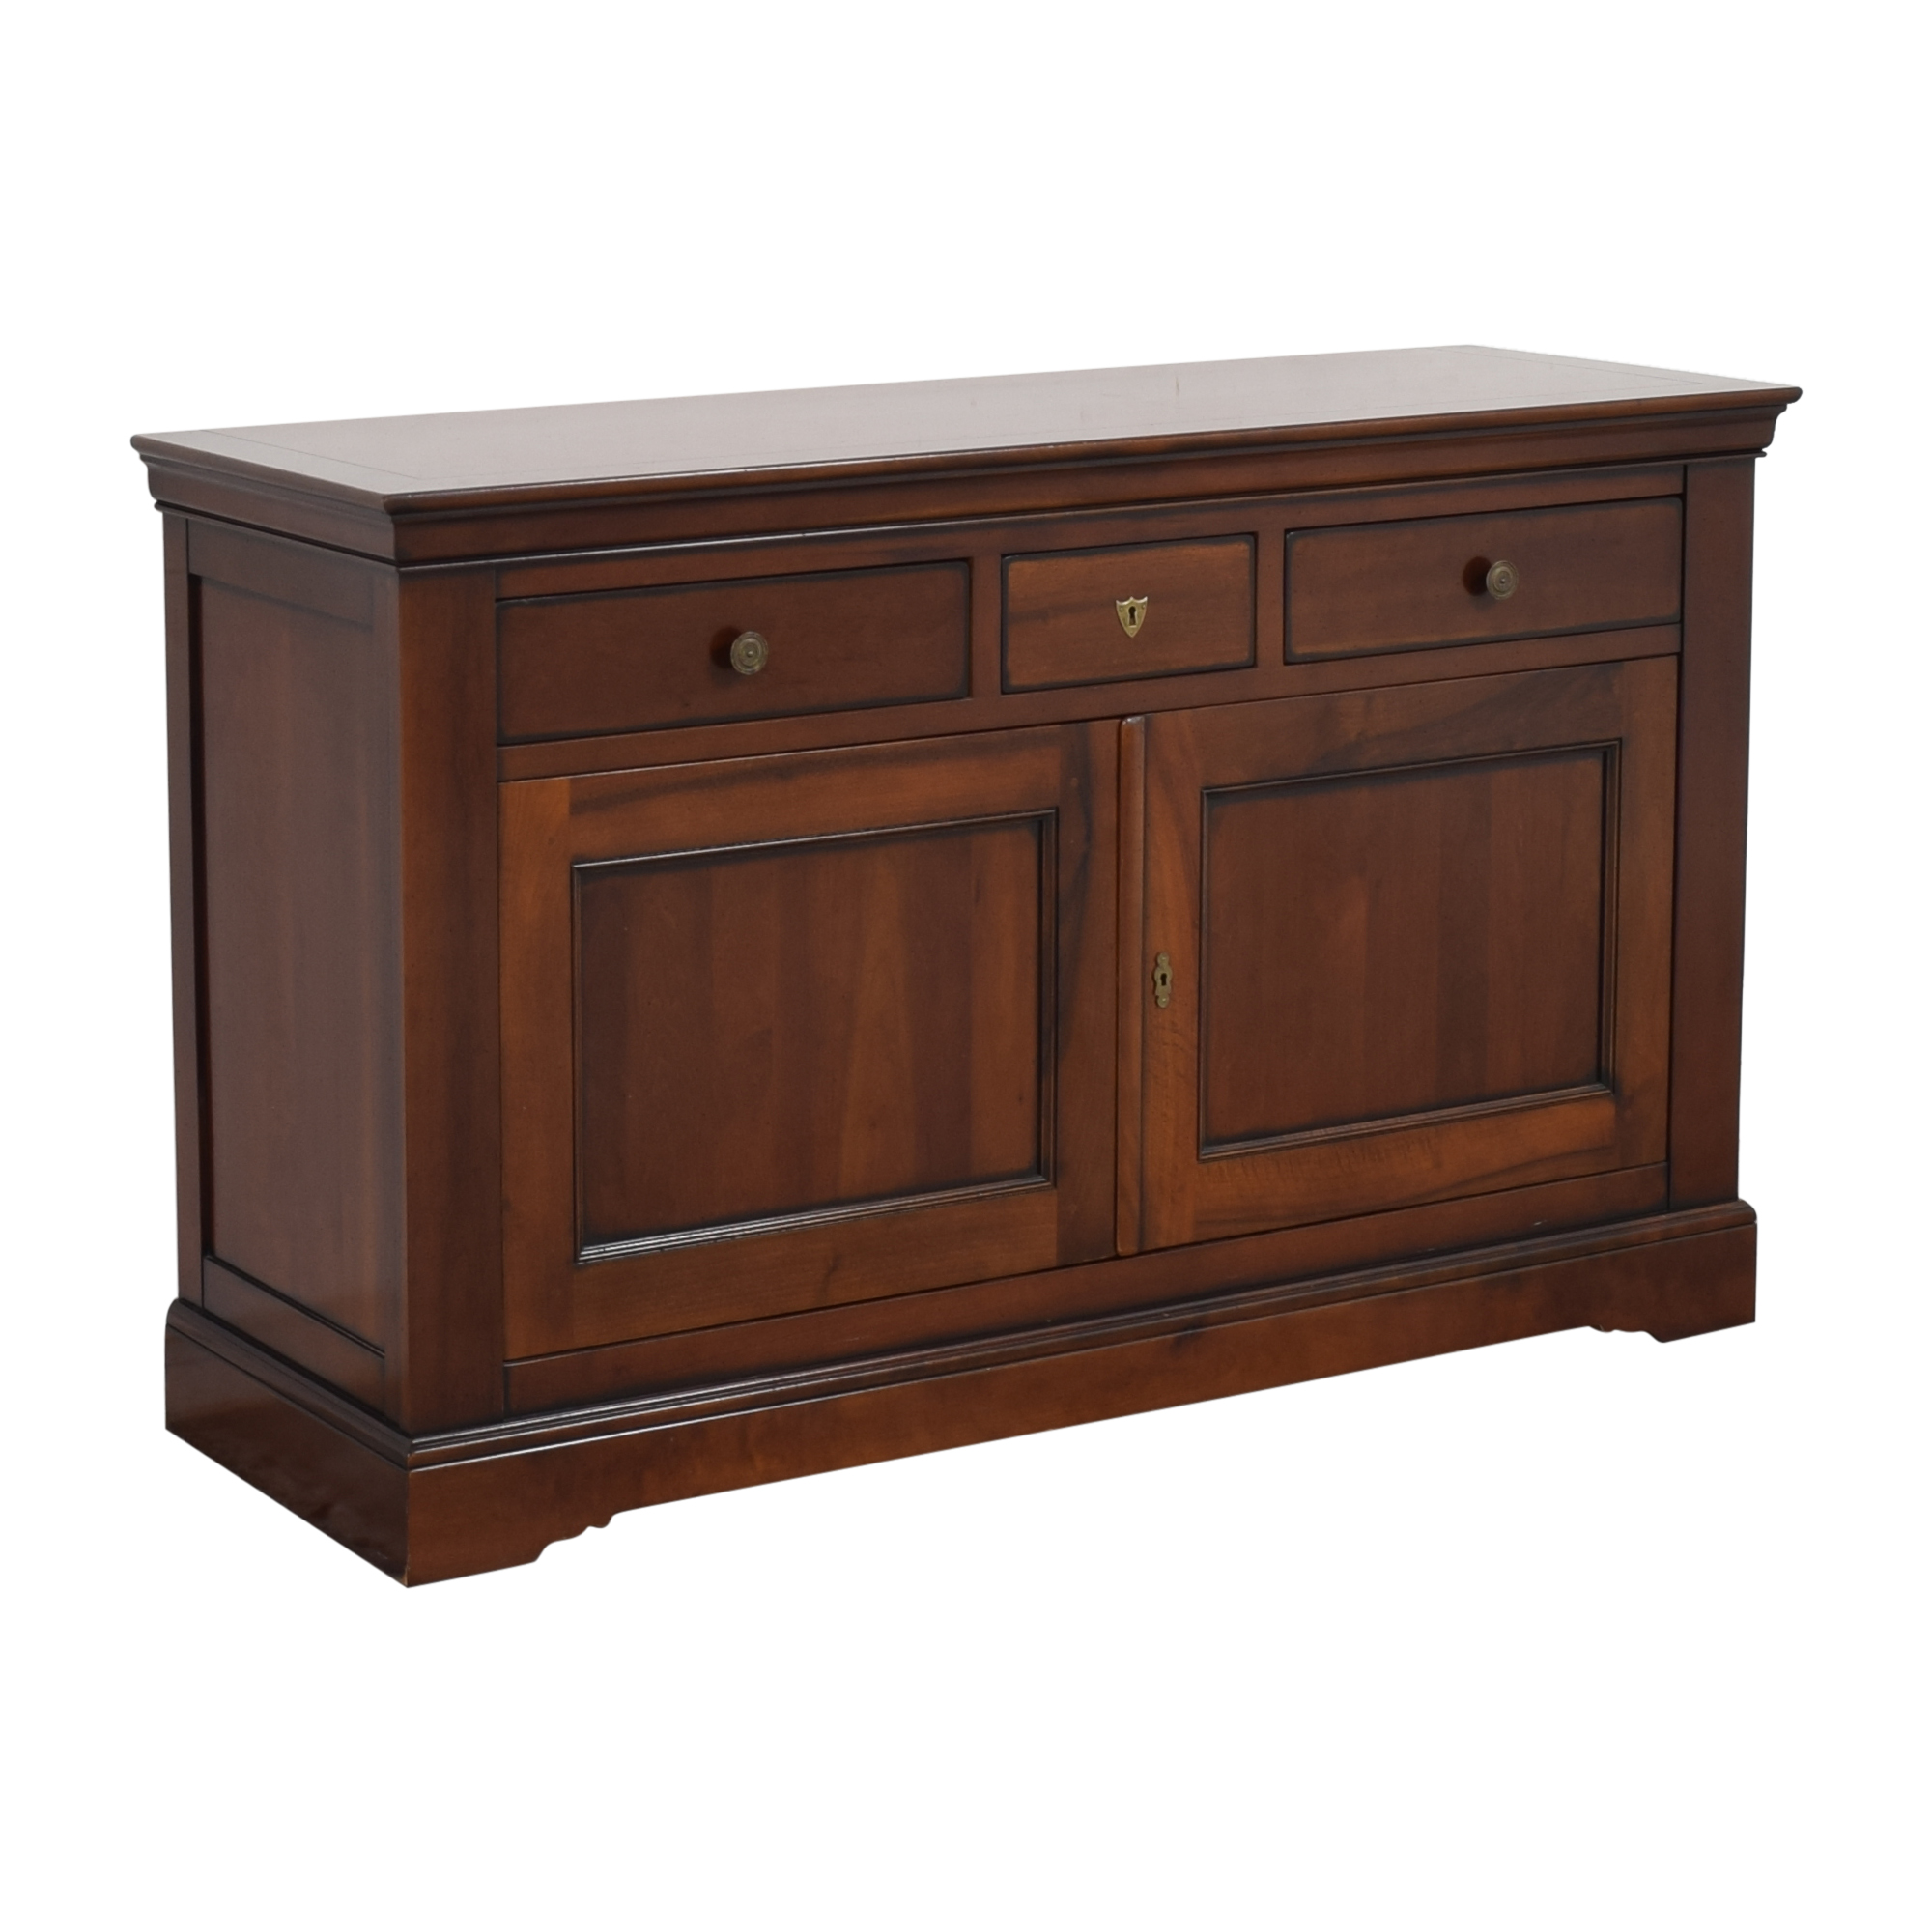 buy Grange French Sideboard with Cabinets Grange Cabinets & Sideboards